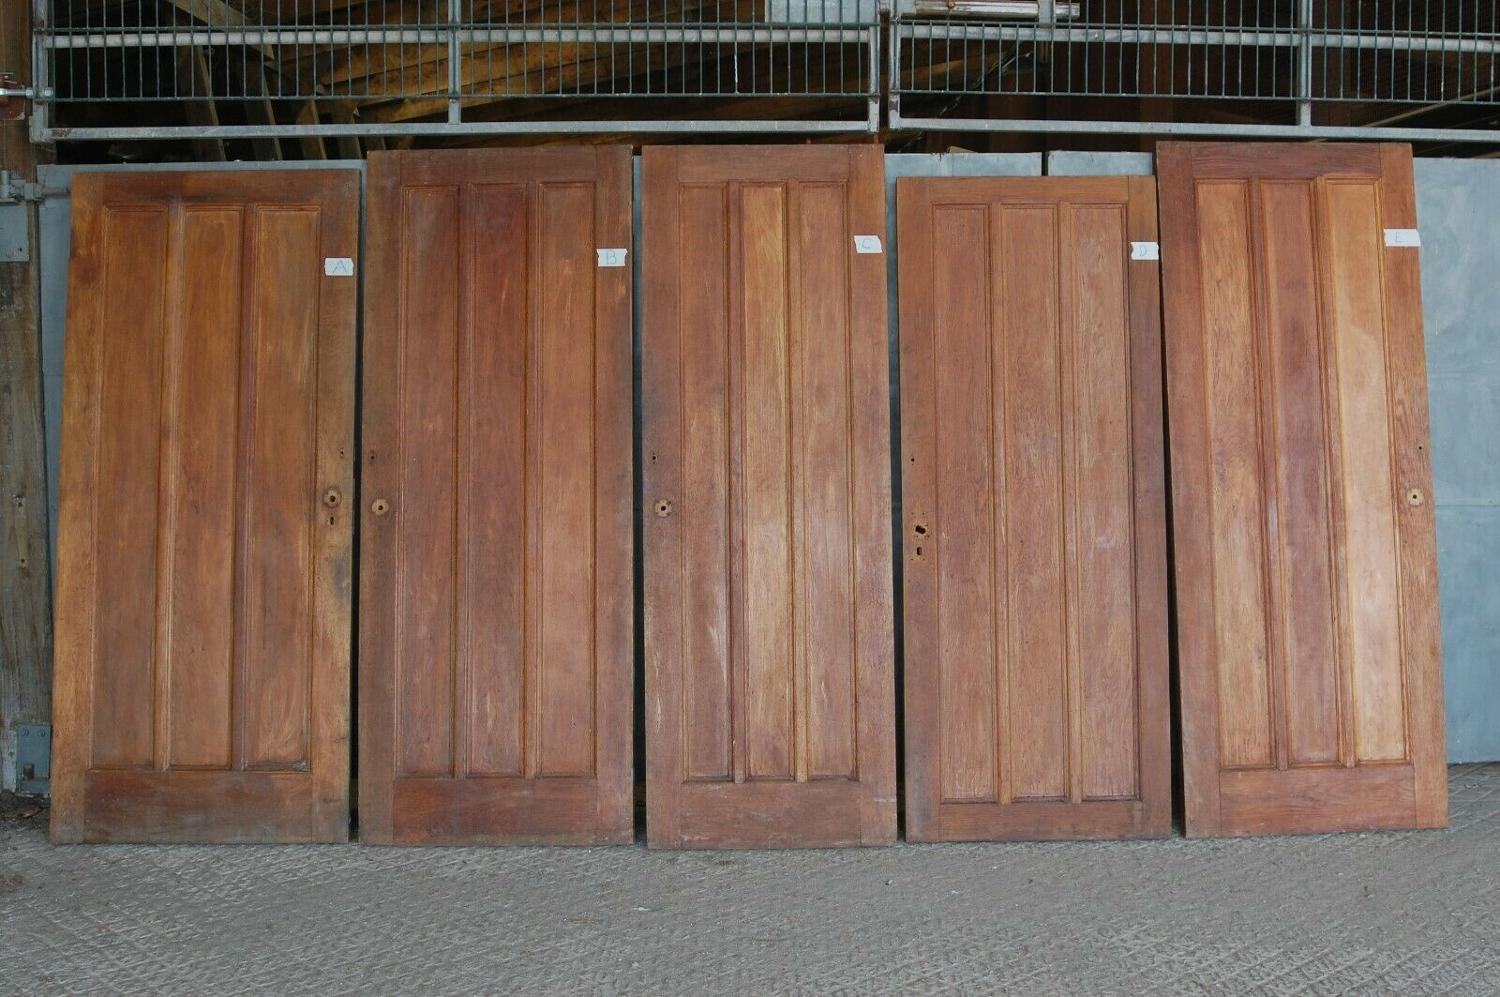 DI0682 EDWARDIAN OAK INTERNAL PANELLED DOOR - 5 AVAILABLE- SOLD SEP